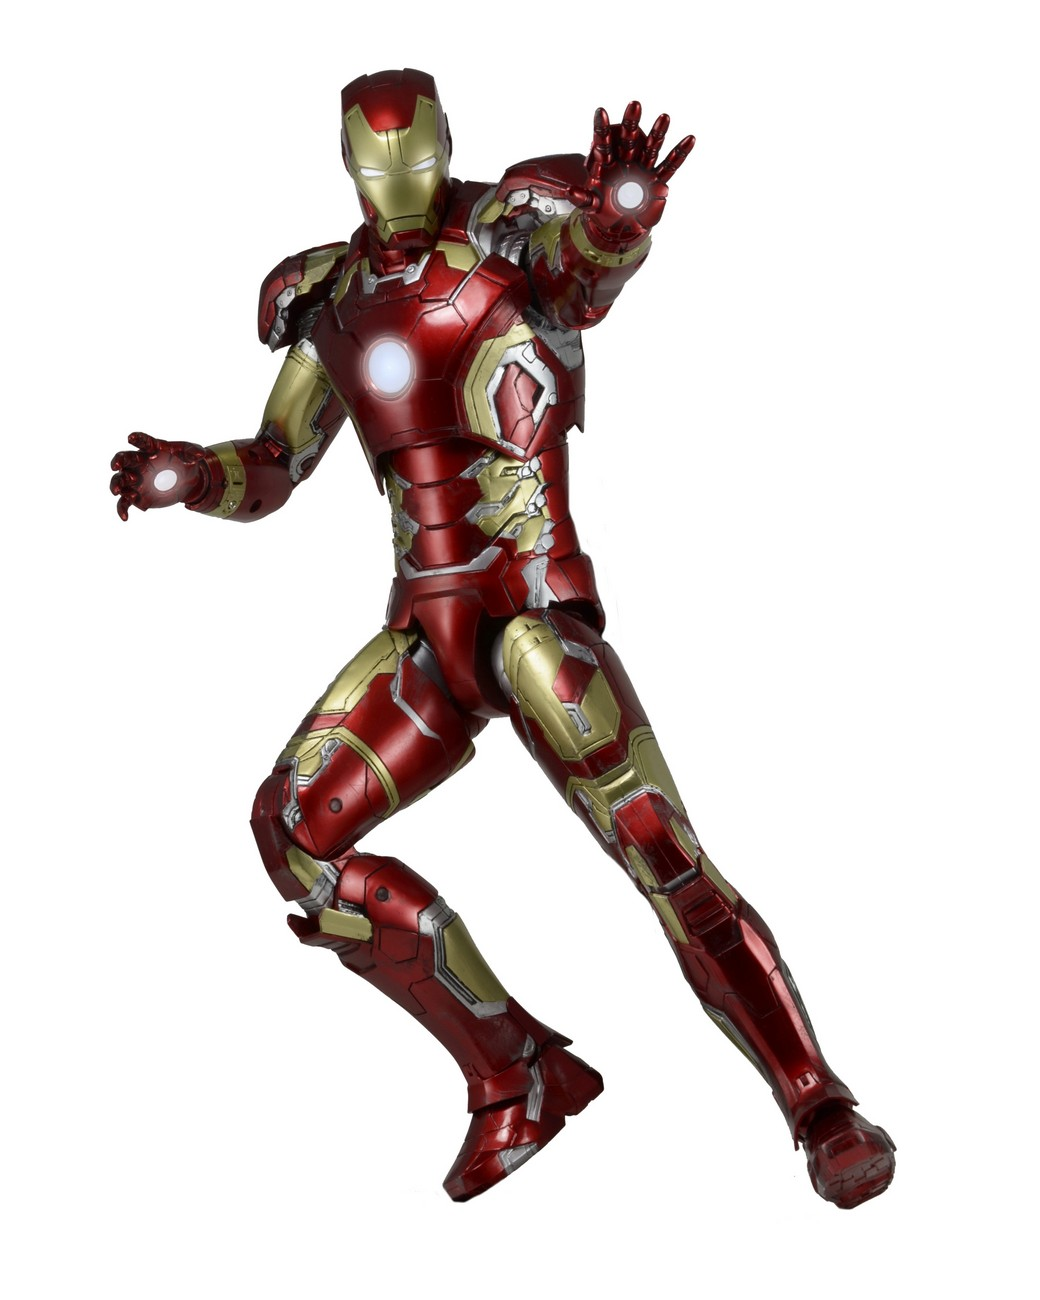 Avengers: Age of Ultron 1/4 Scale Iron Man Mark 43 ... Iron Man Avengers Full Body